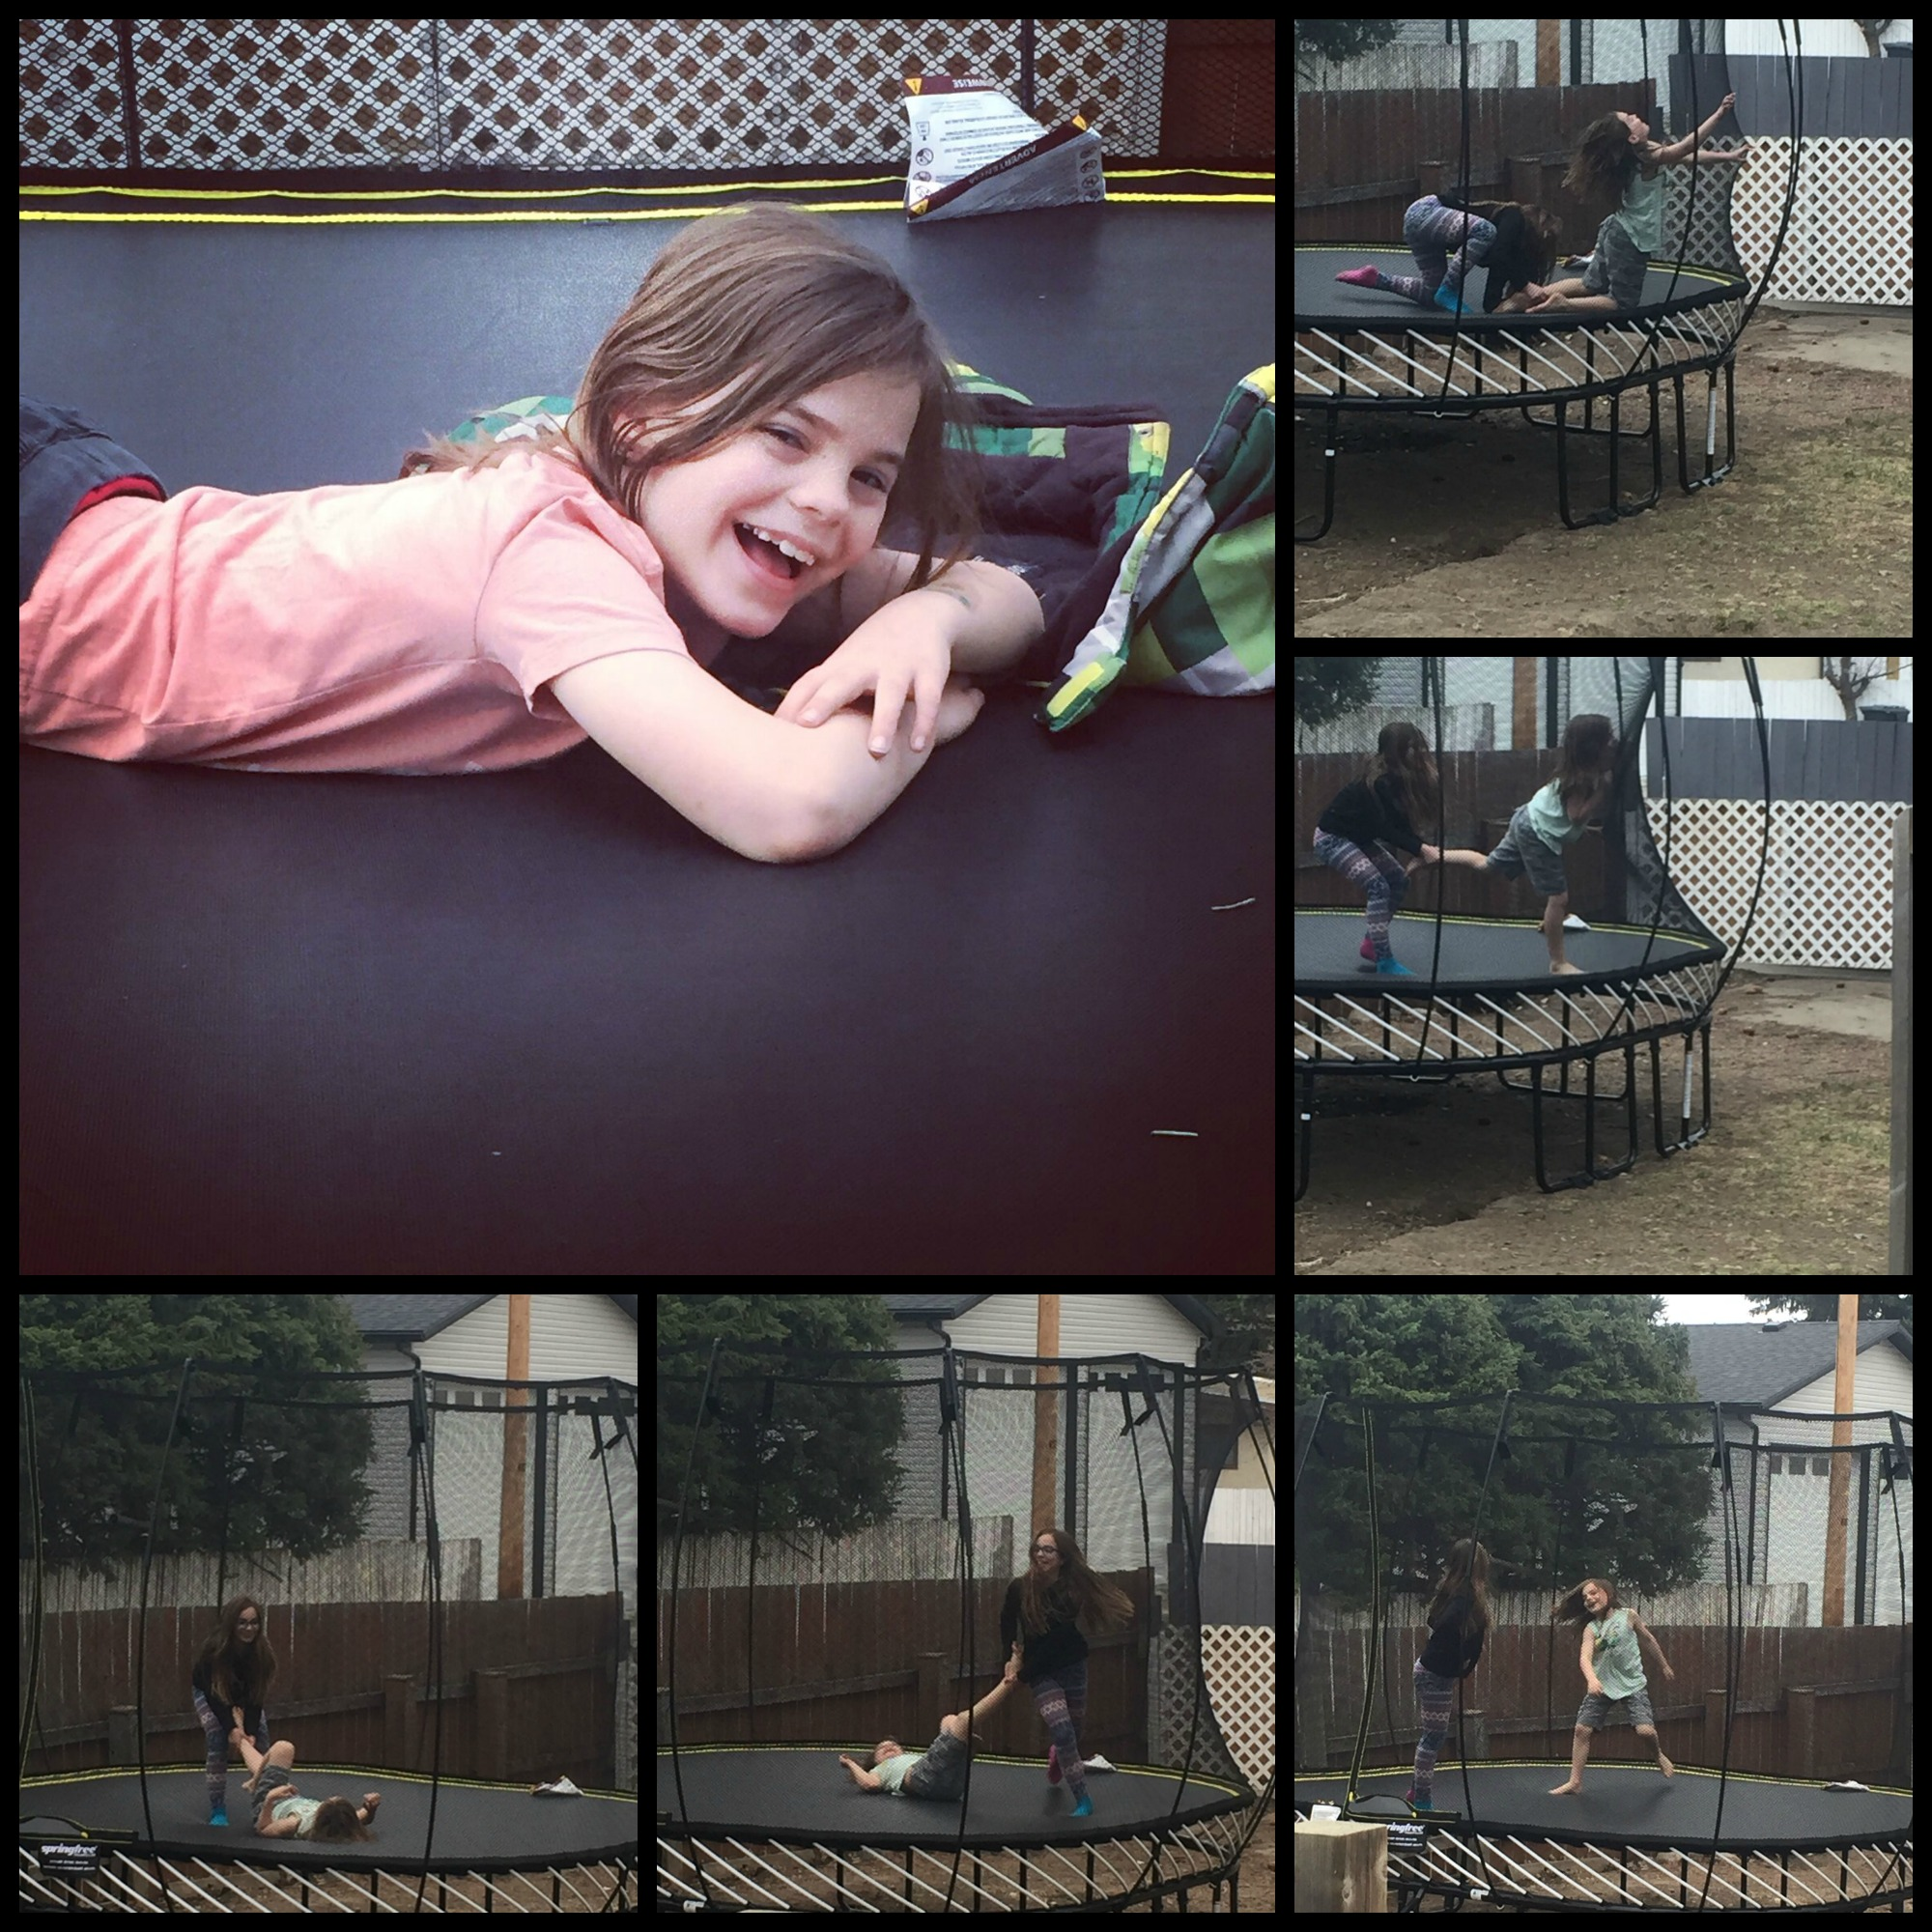 Springfree trampoline blogger these are your days canada 150 childhood unplugged collage